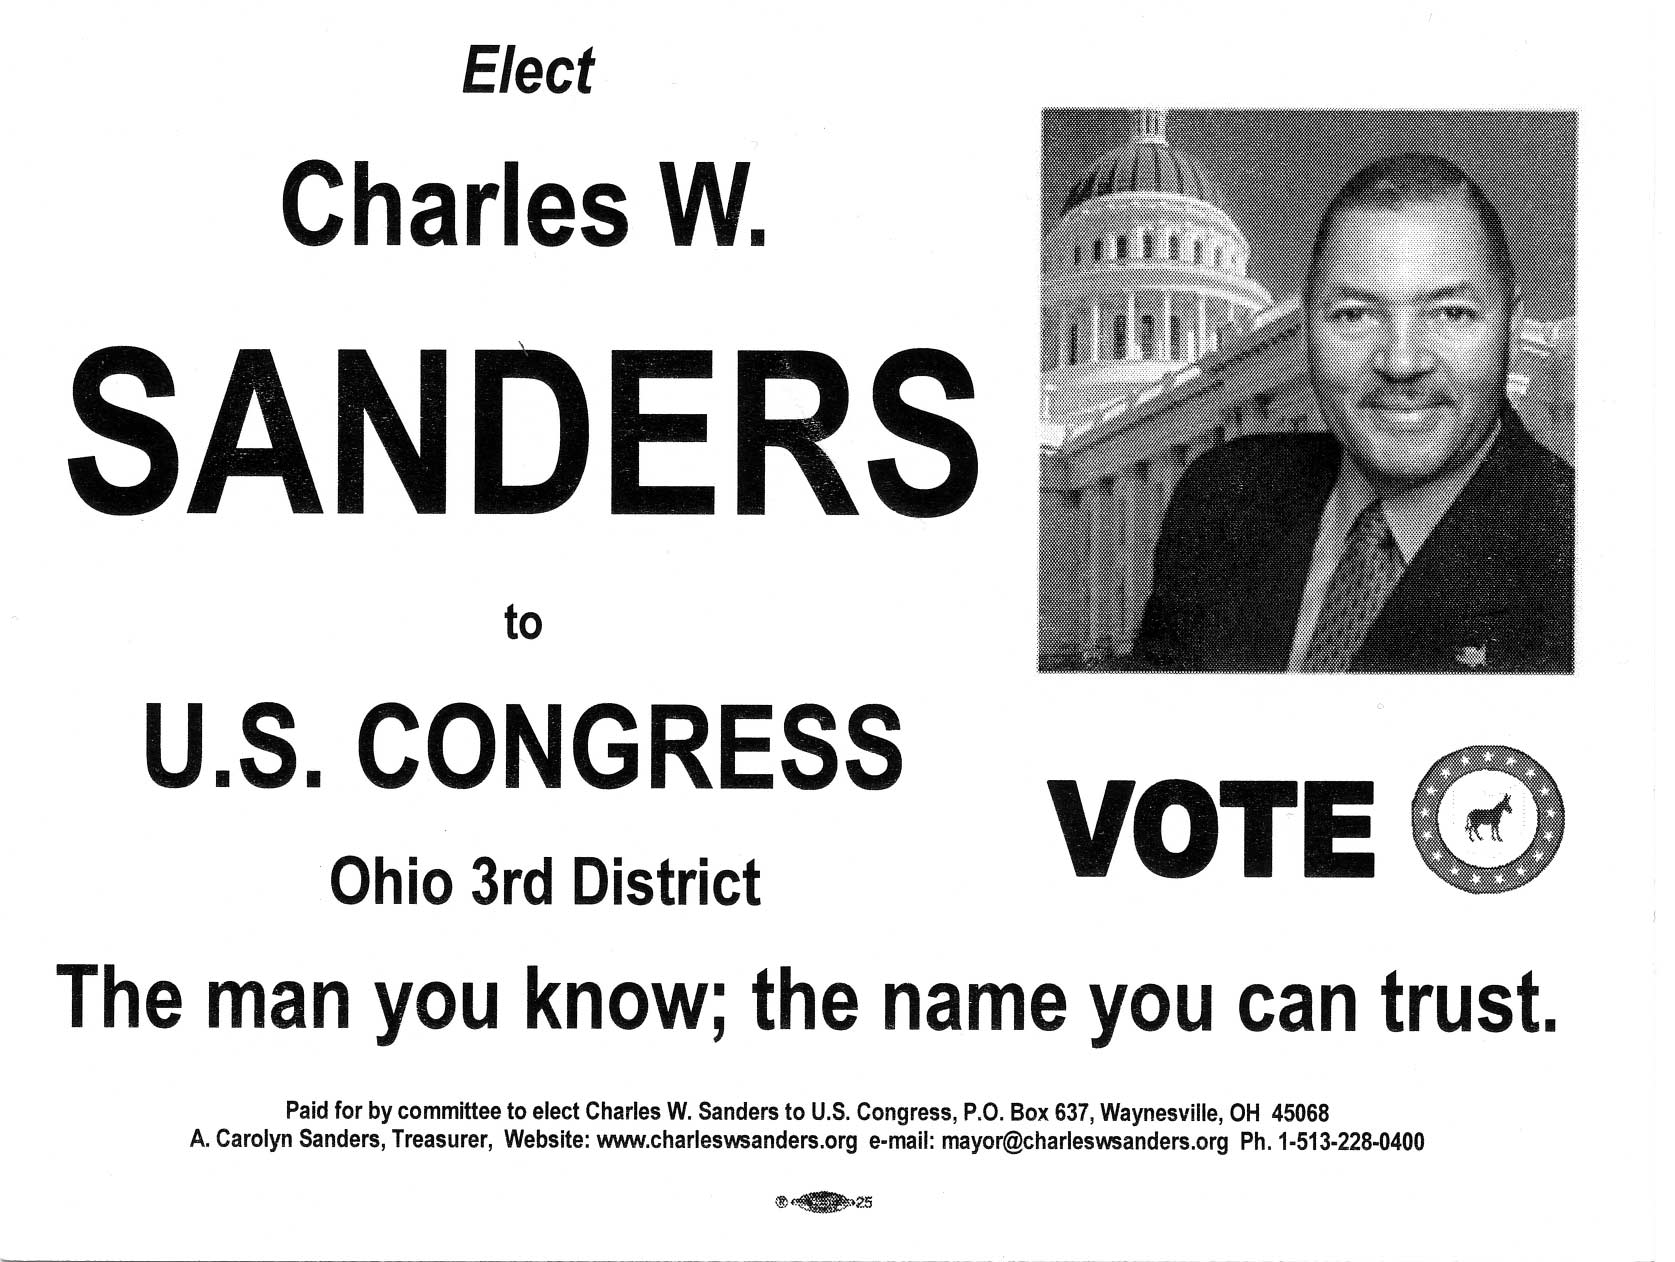 Scan of Charles W. Sanders campaign handout.